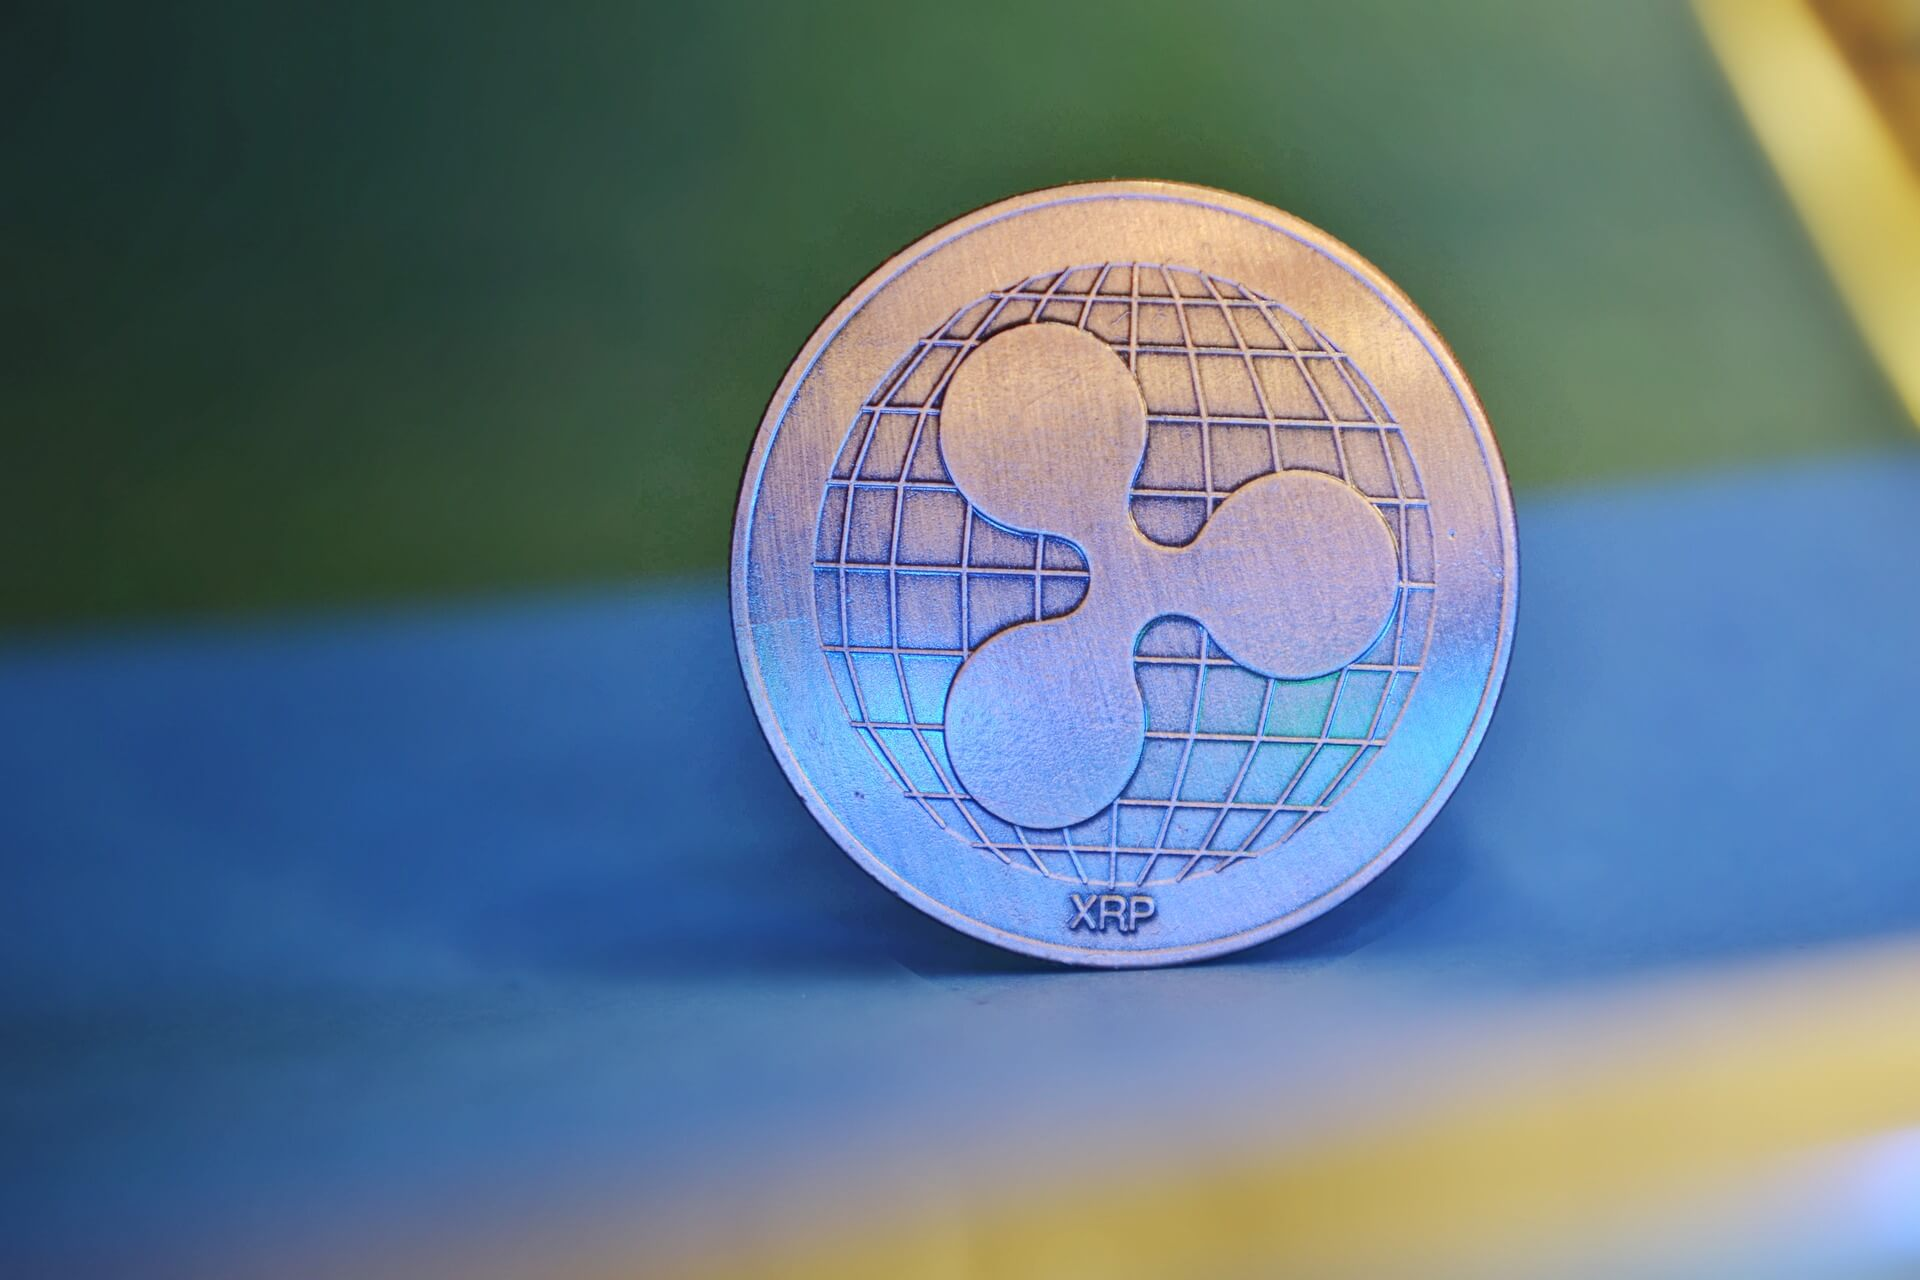 Research: Ripple has sold $890 million of XRP, 34% to exchanges